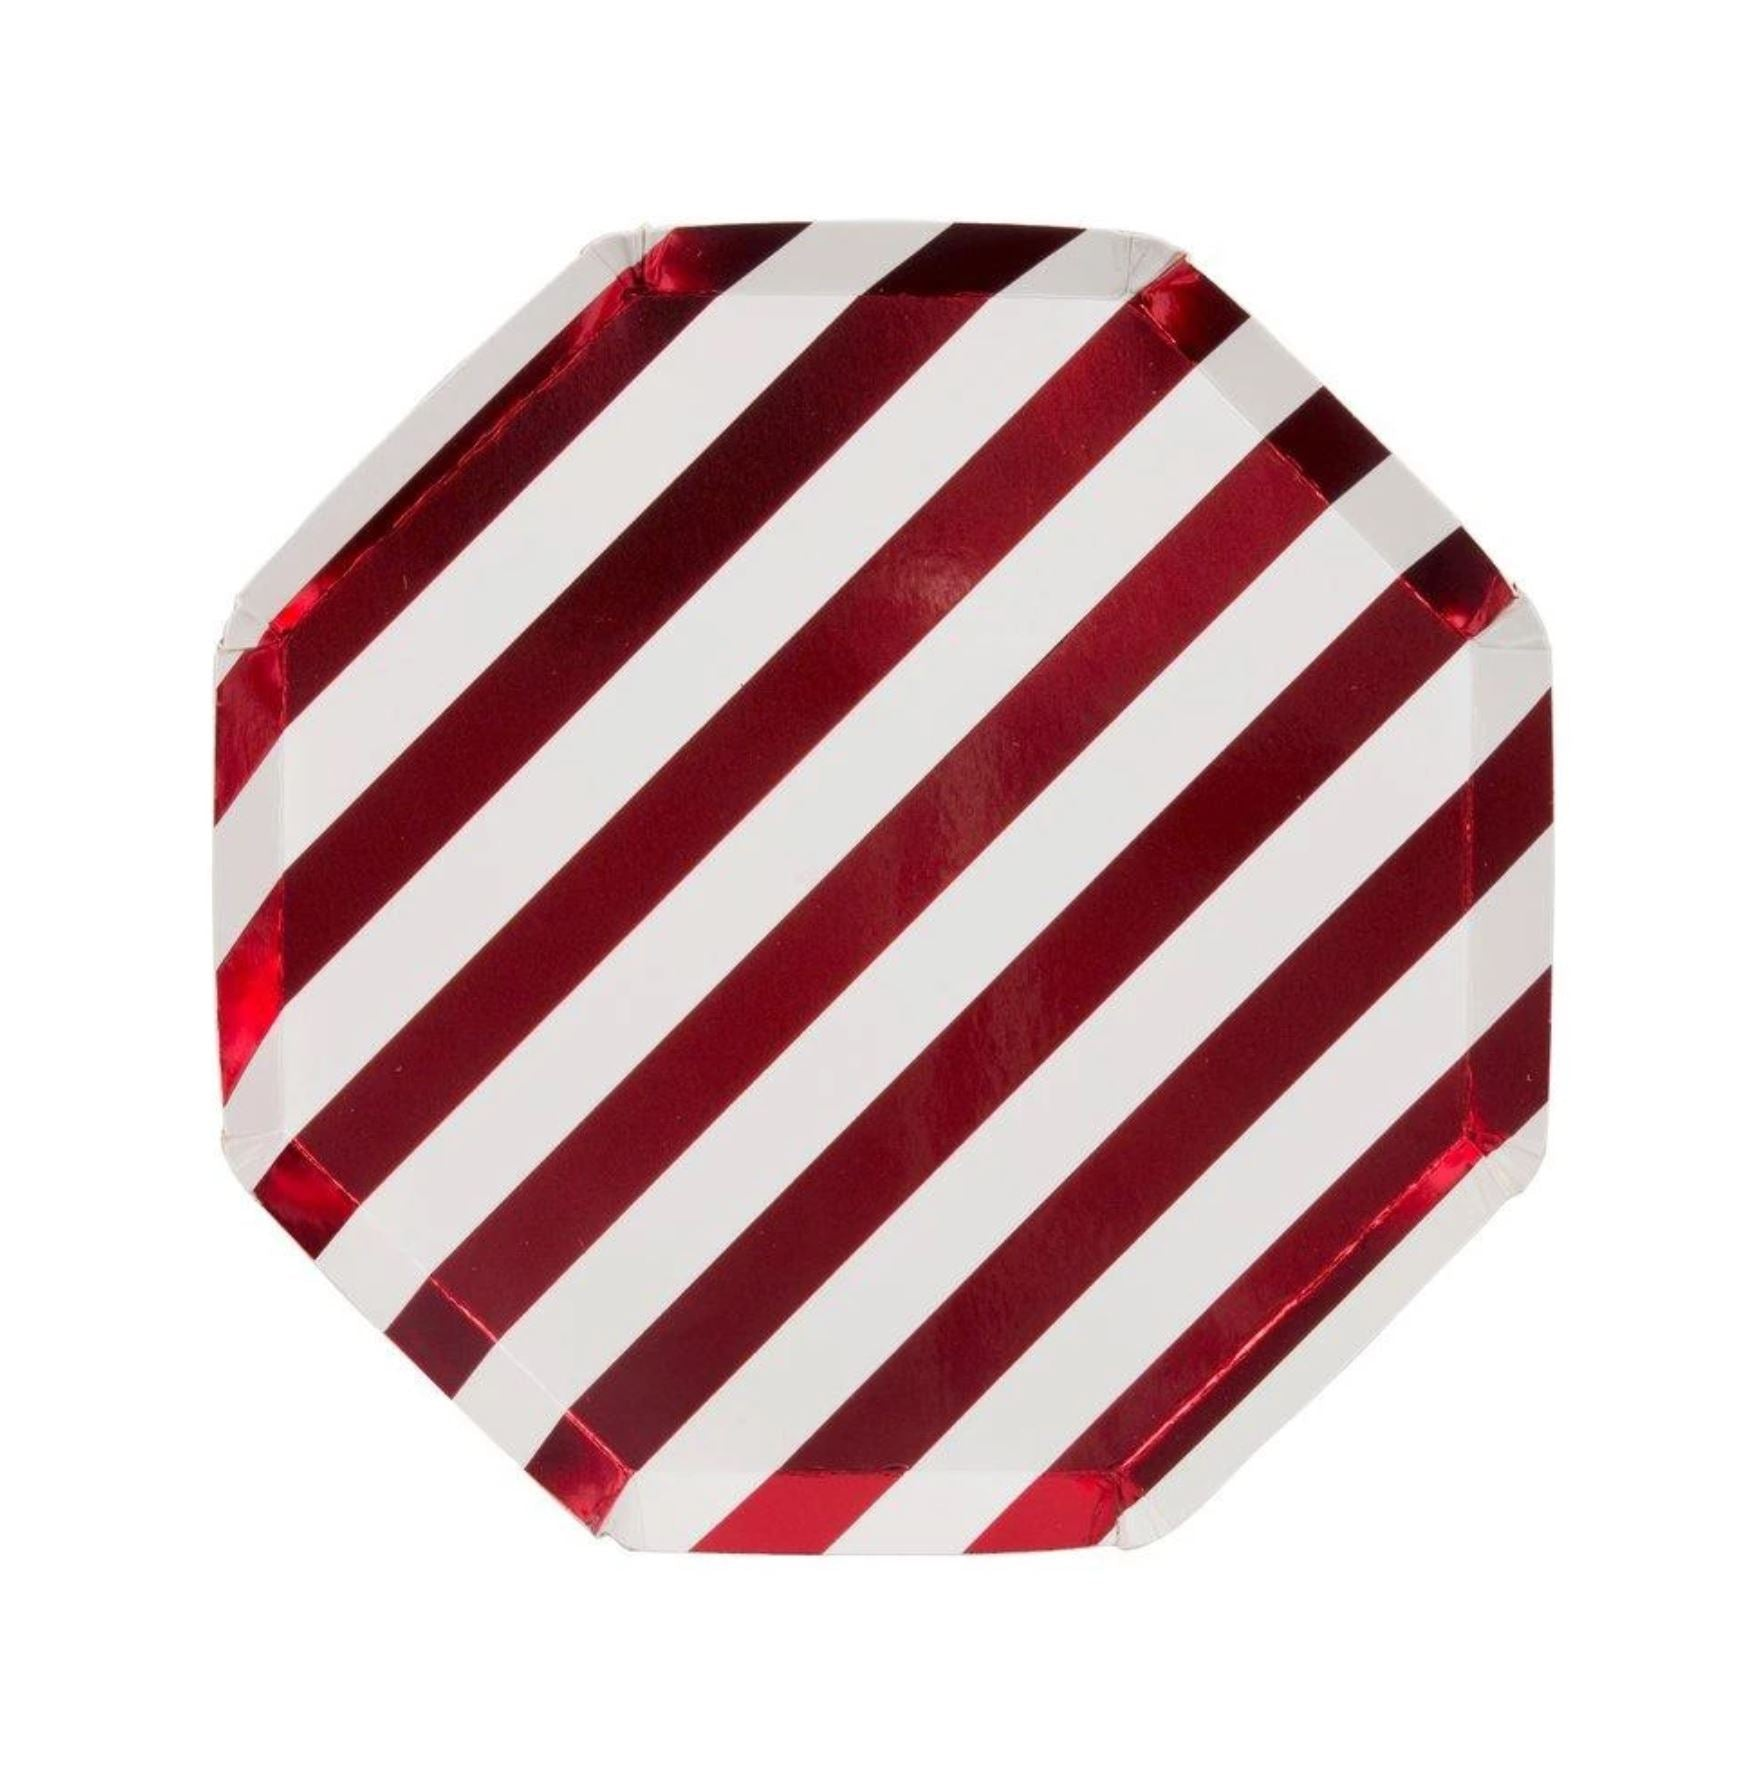 Shiny Red Stripe Plates (Small)